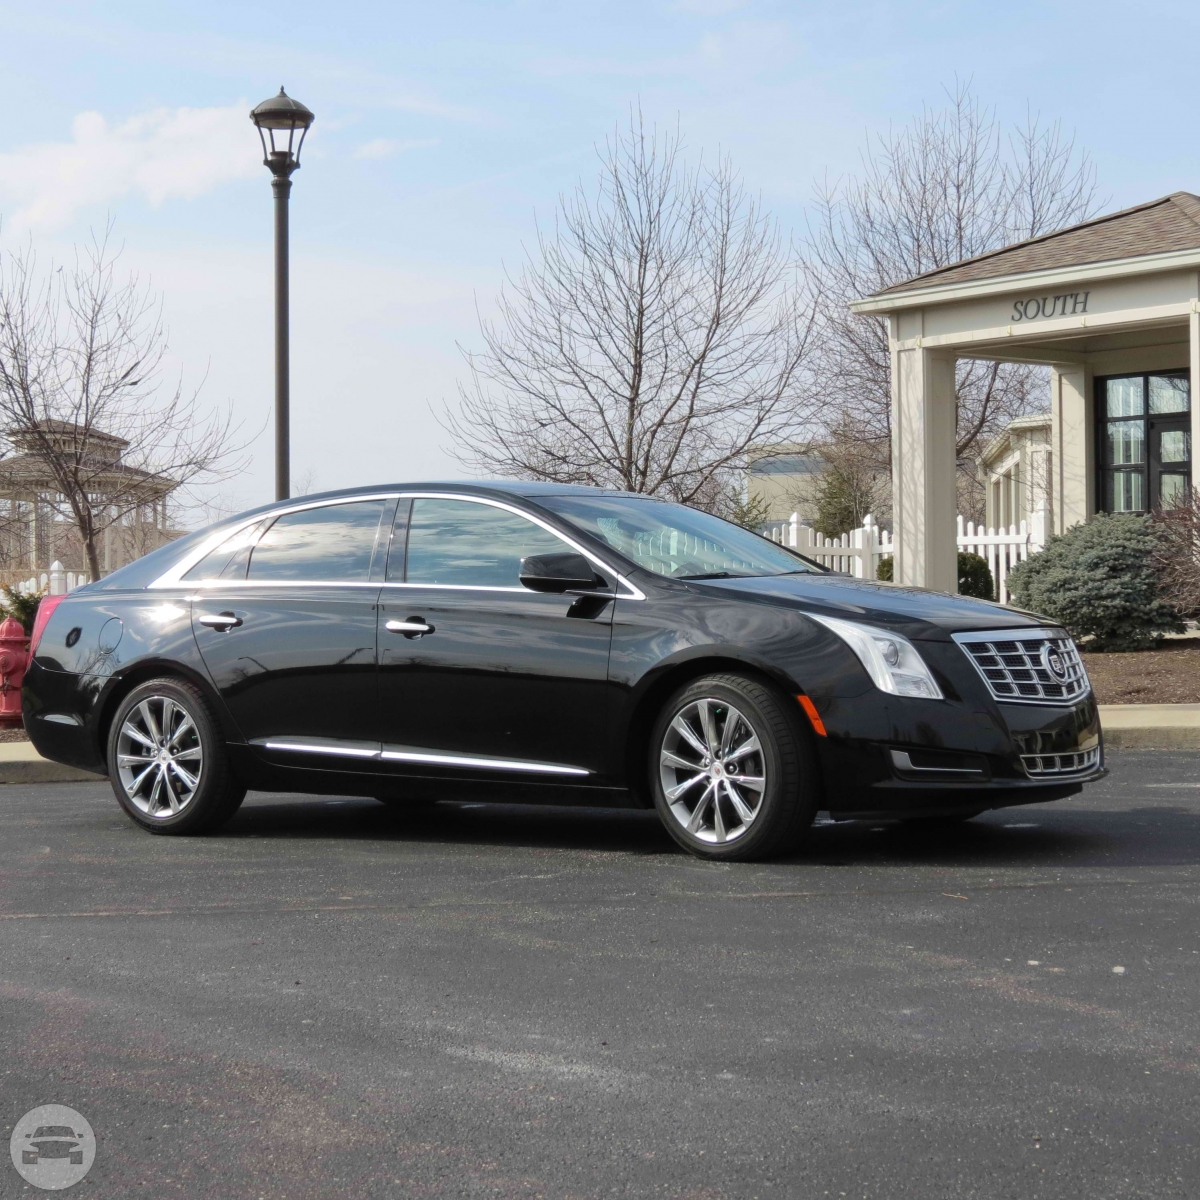 Cadillac XTS Sedan Sedan  / Cincinnati, OH   / Hourly $0.00